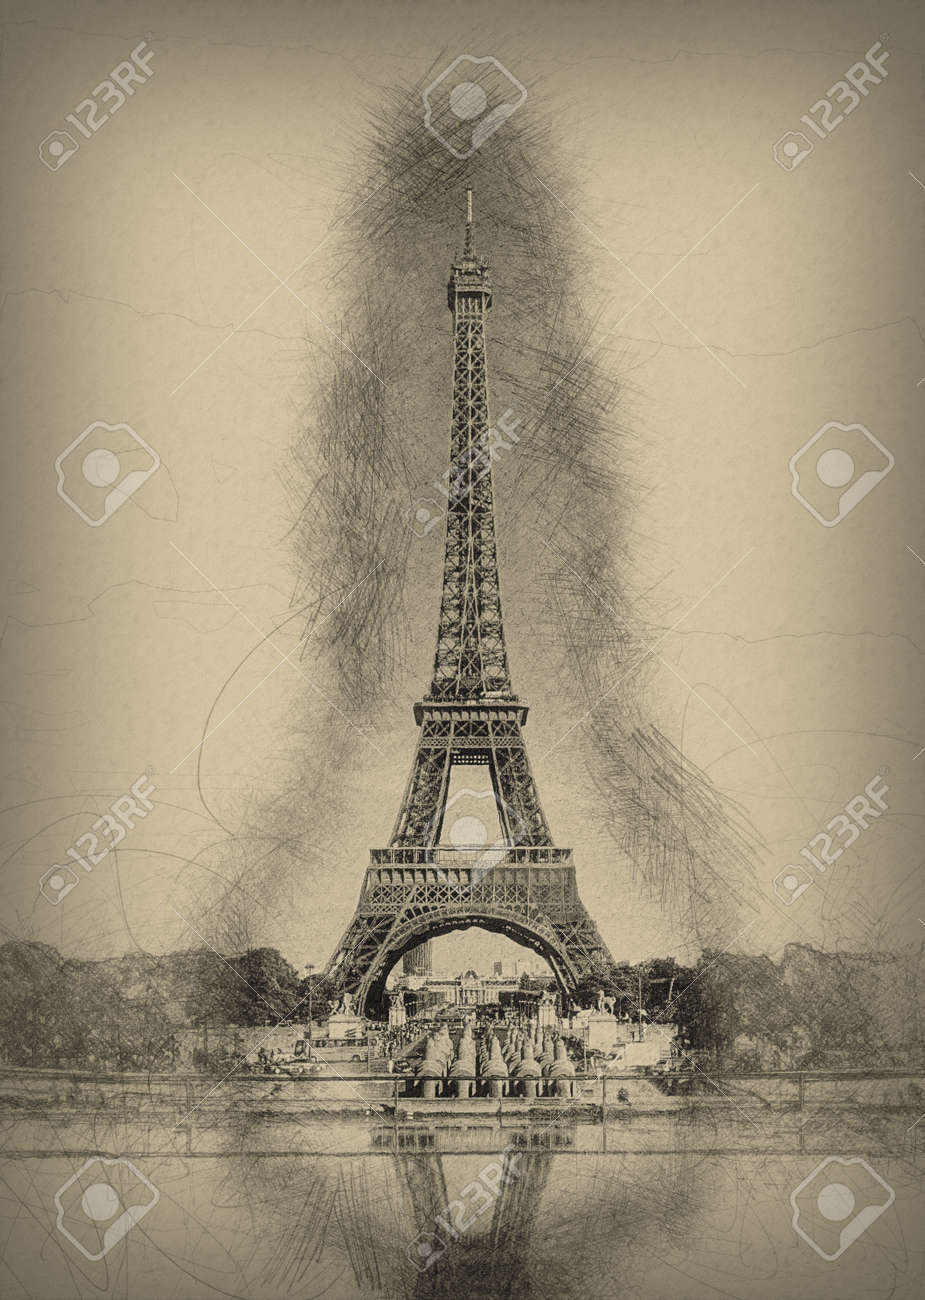 pencil line sketch of historical eiffel tower with shading and